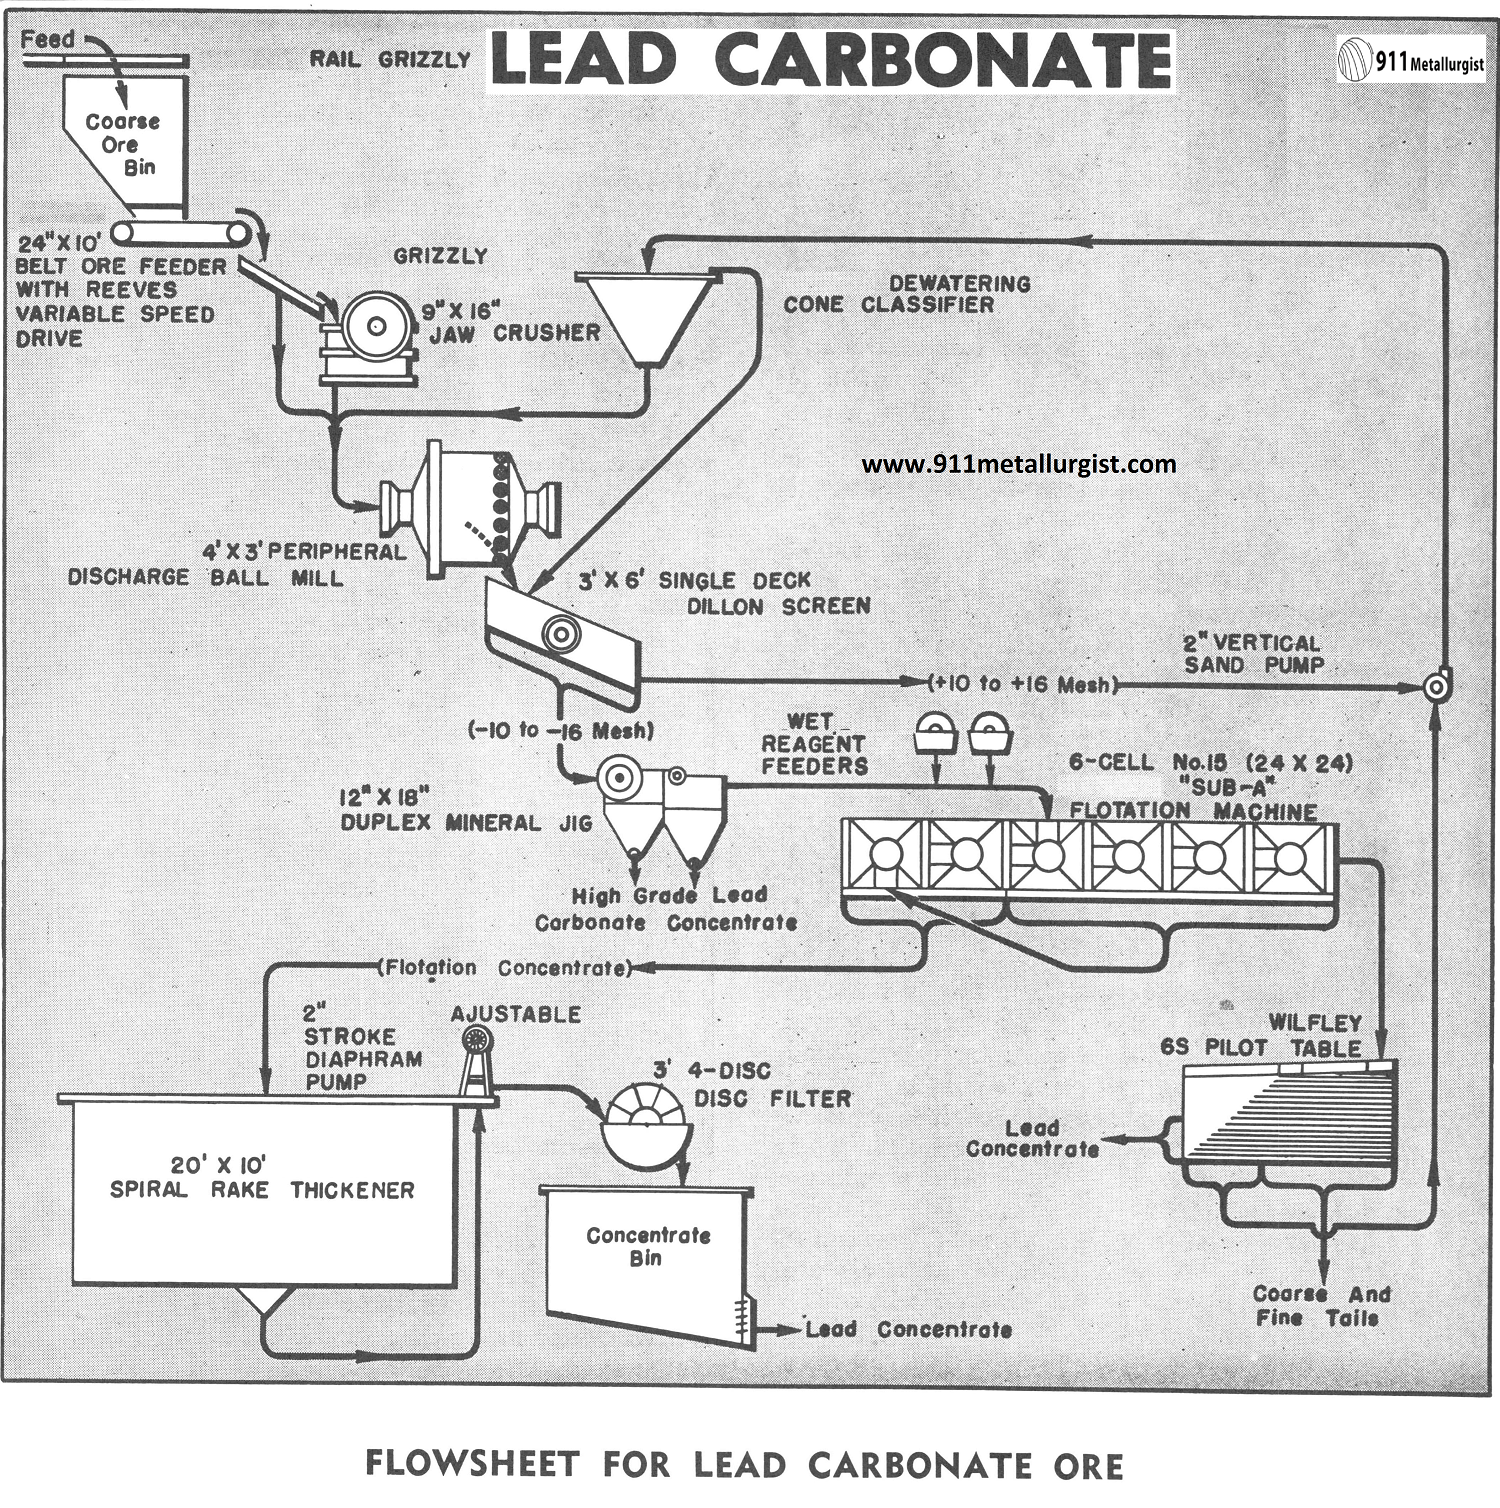 Flowsheet for Lead Carbonate Ore